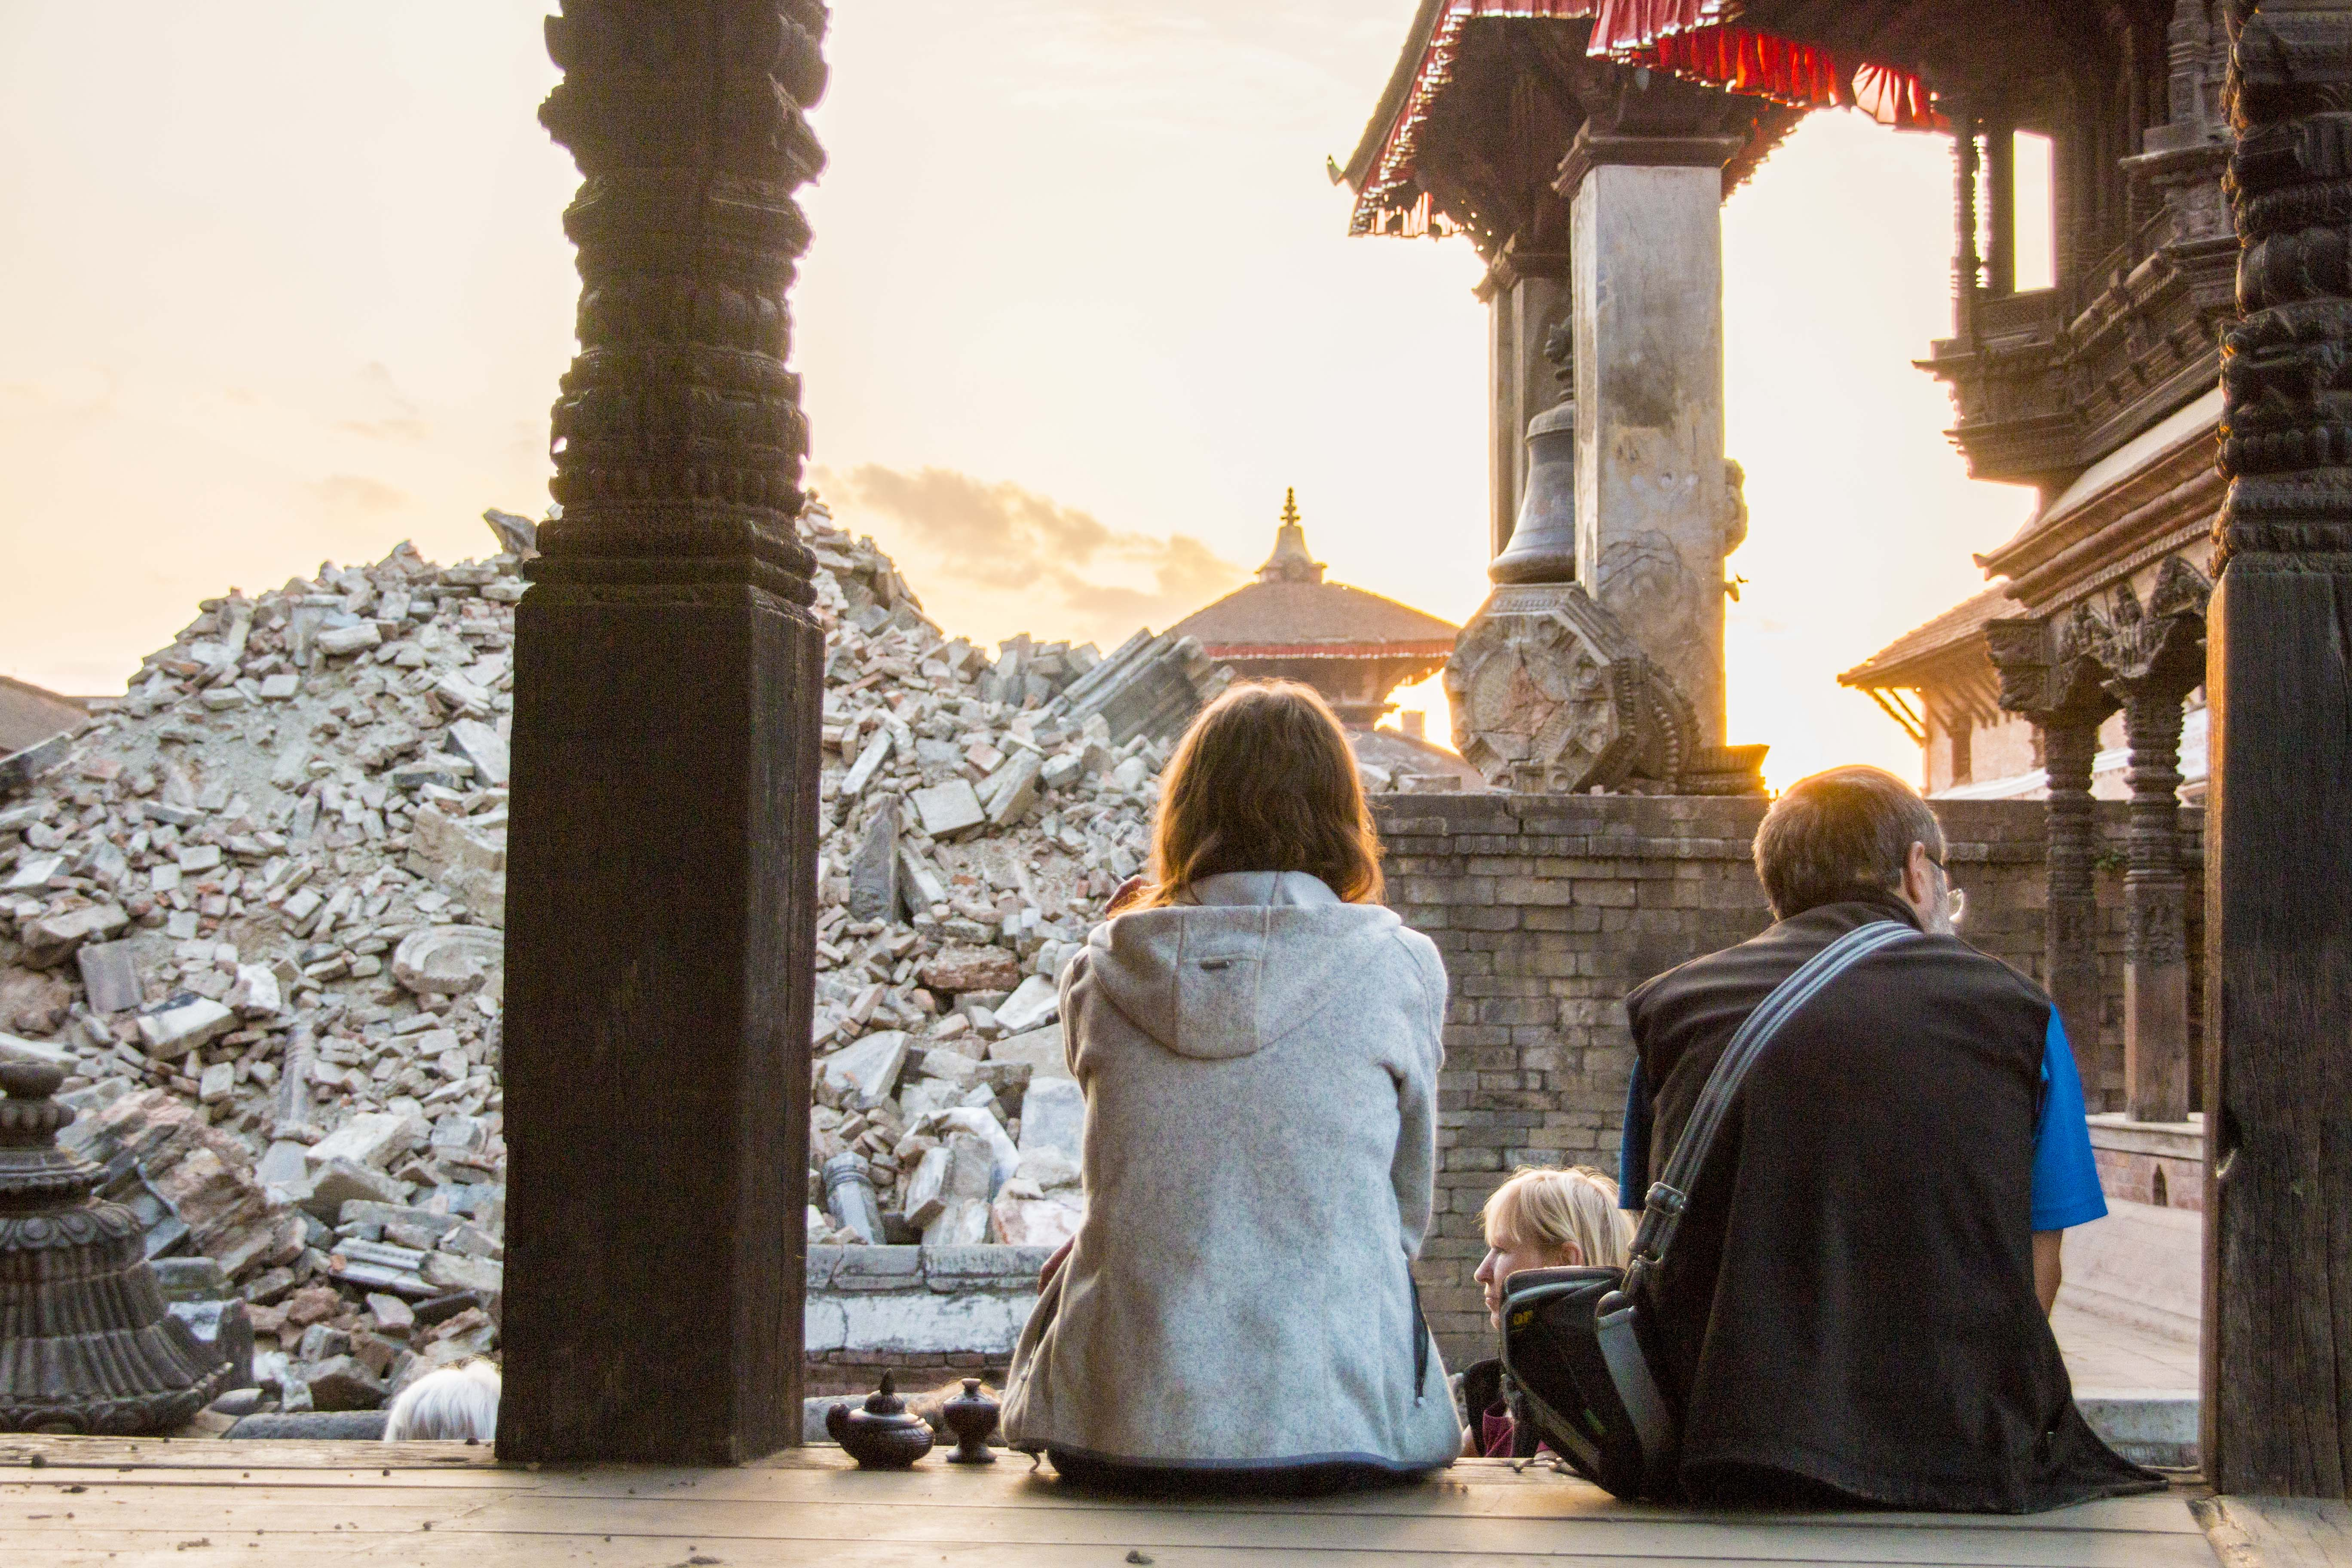 nepal tragedy The disastrous earthquake in nepal was large, but geophysicists knew it was coming, writes scientist colin stark.